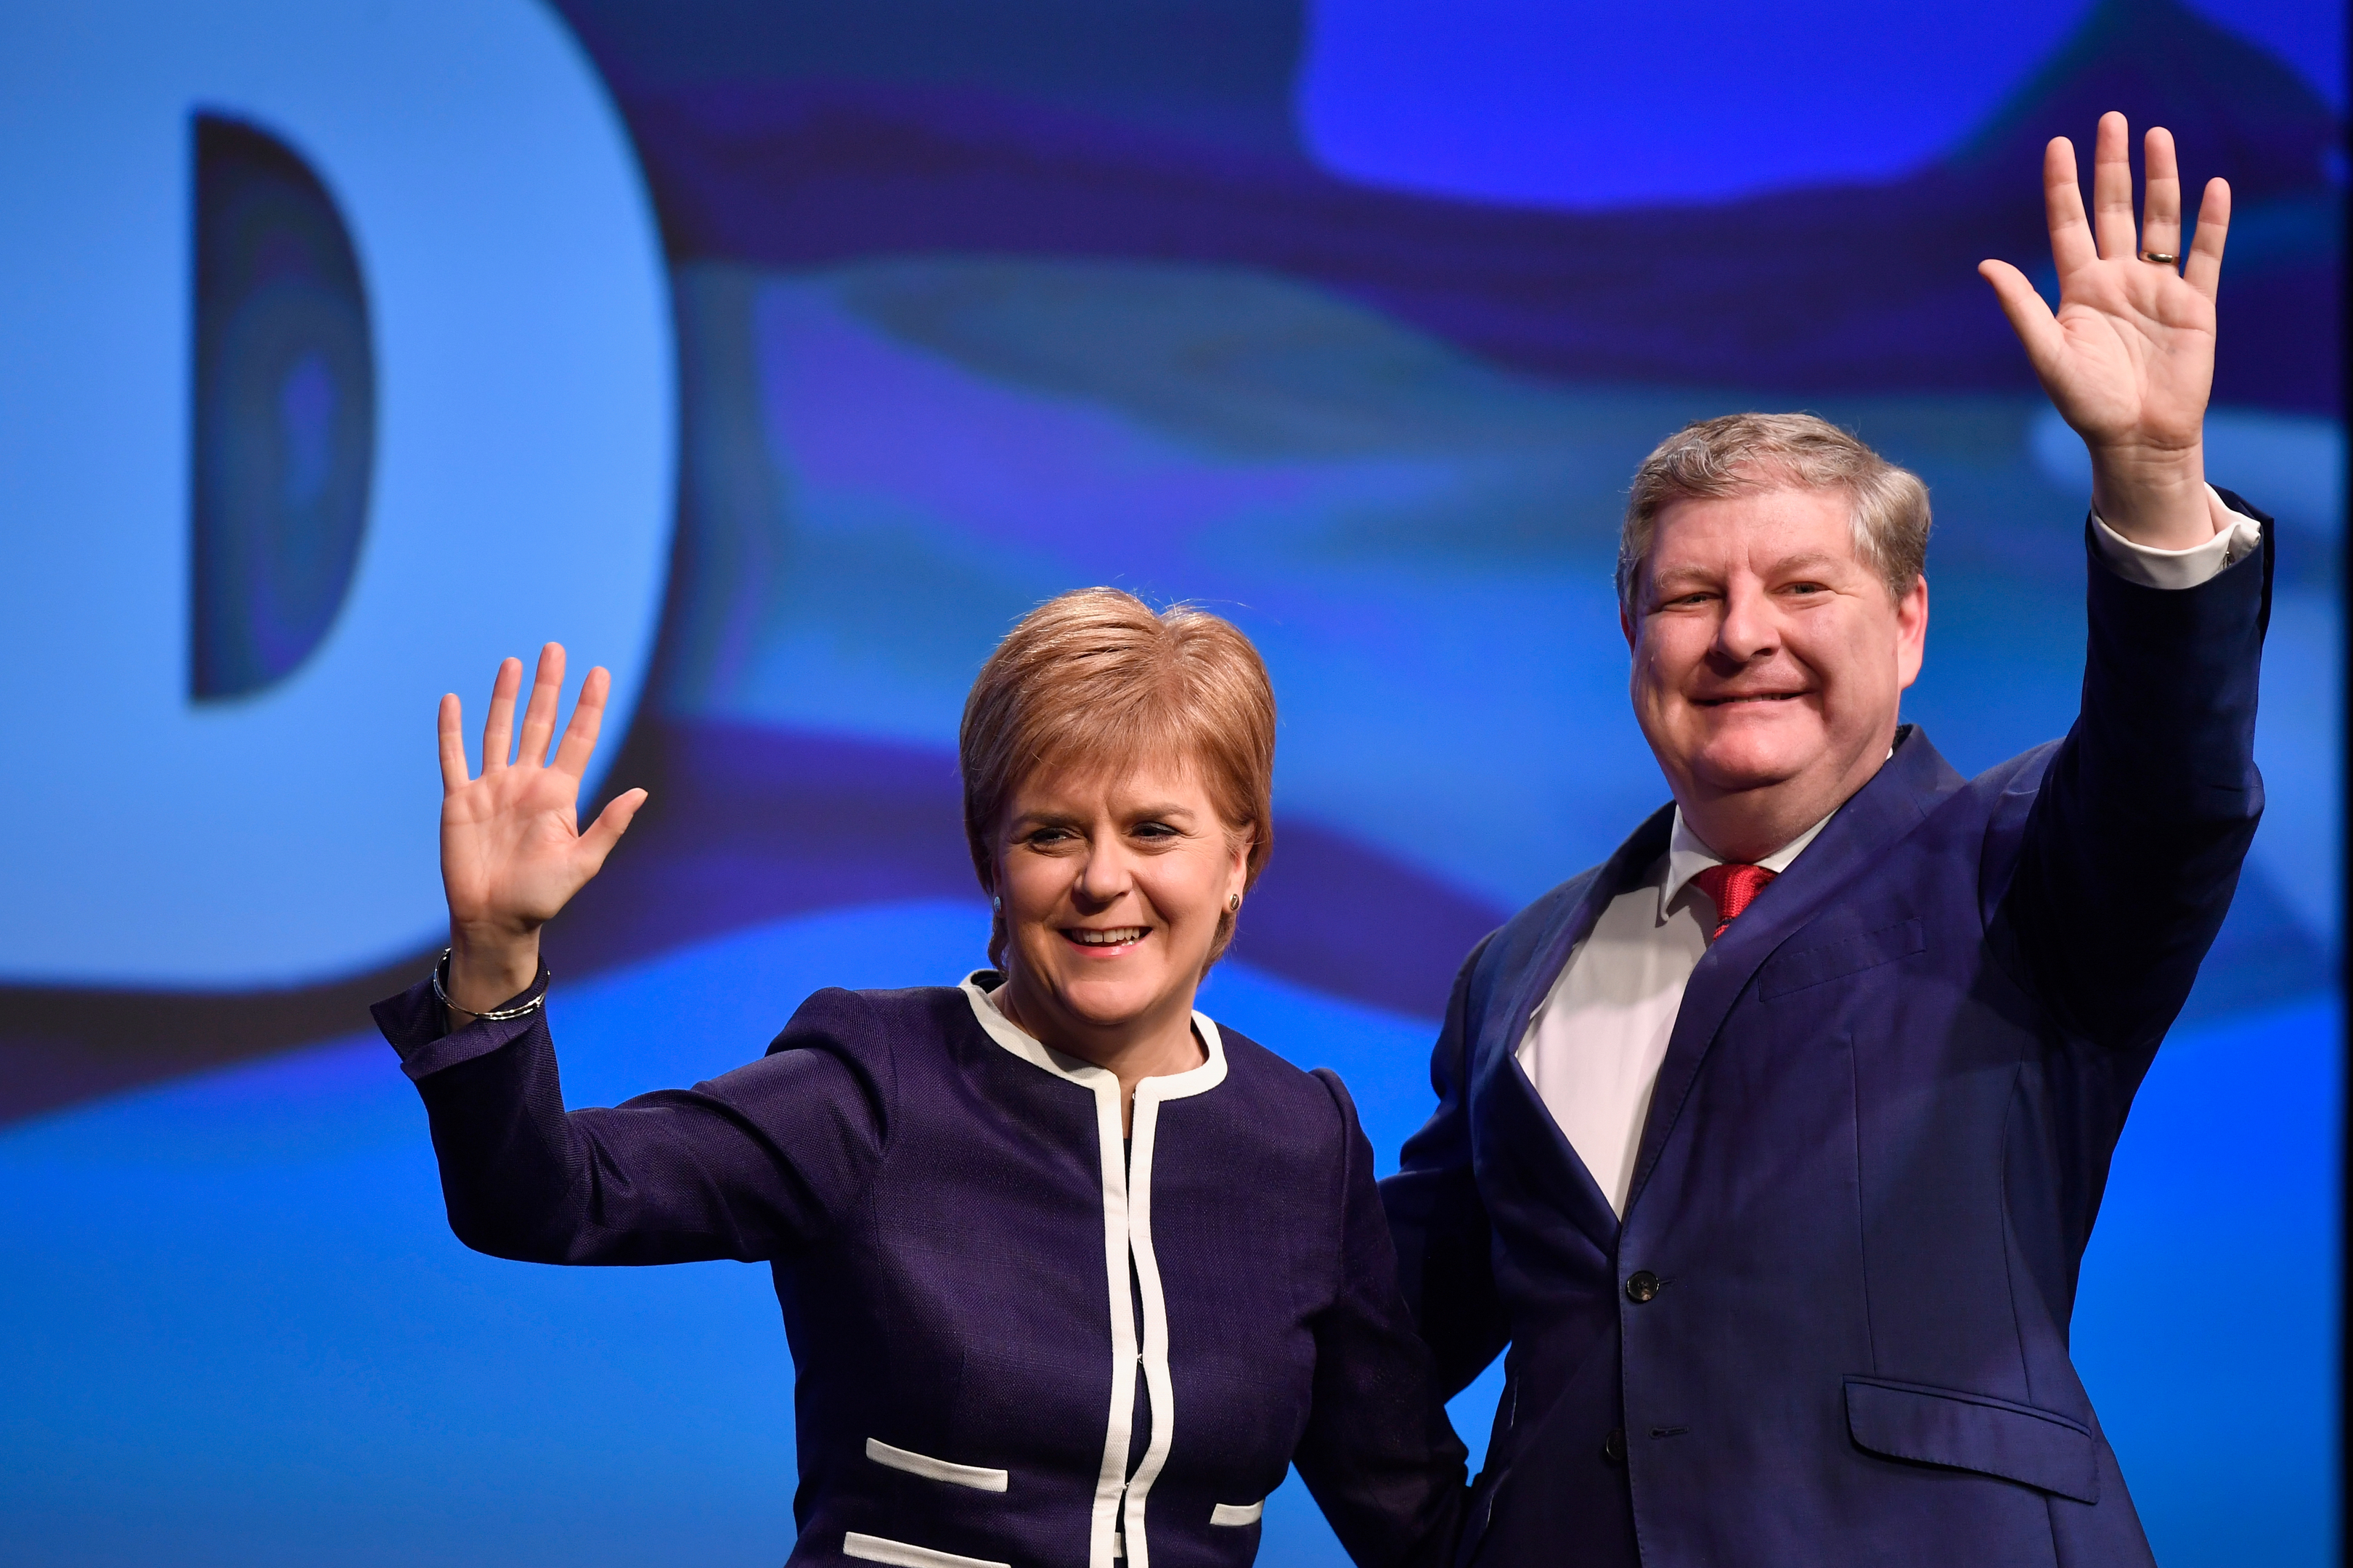 First Minister Nicola Sturgeon, and Angus Robertson, deputy SNP leader, acknowledge applause after addressing delegates at the SNP spring conference in Aberdeen.